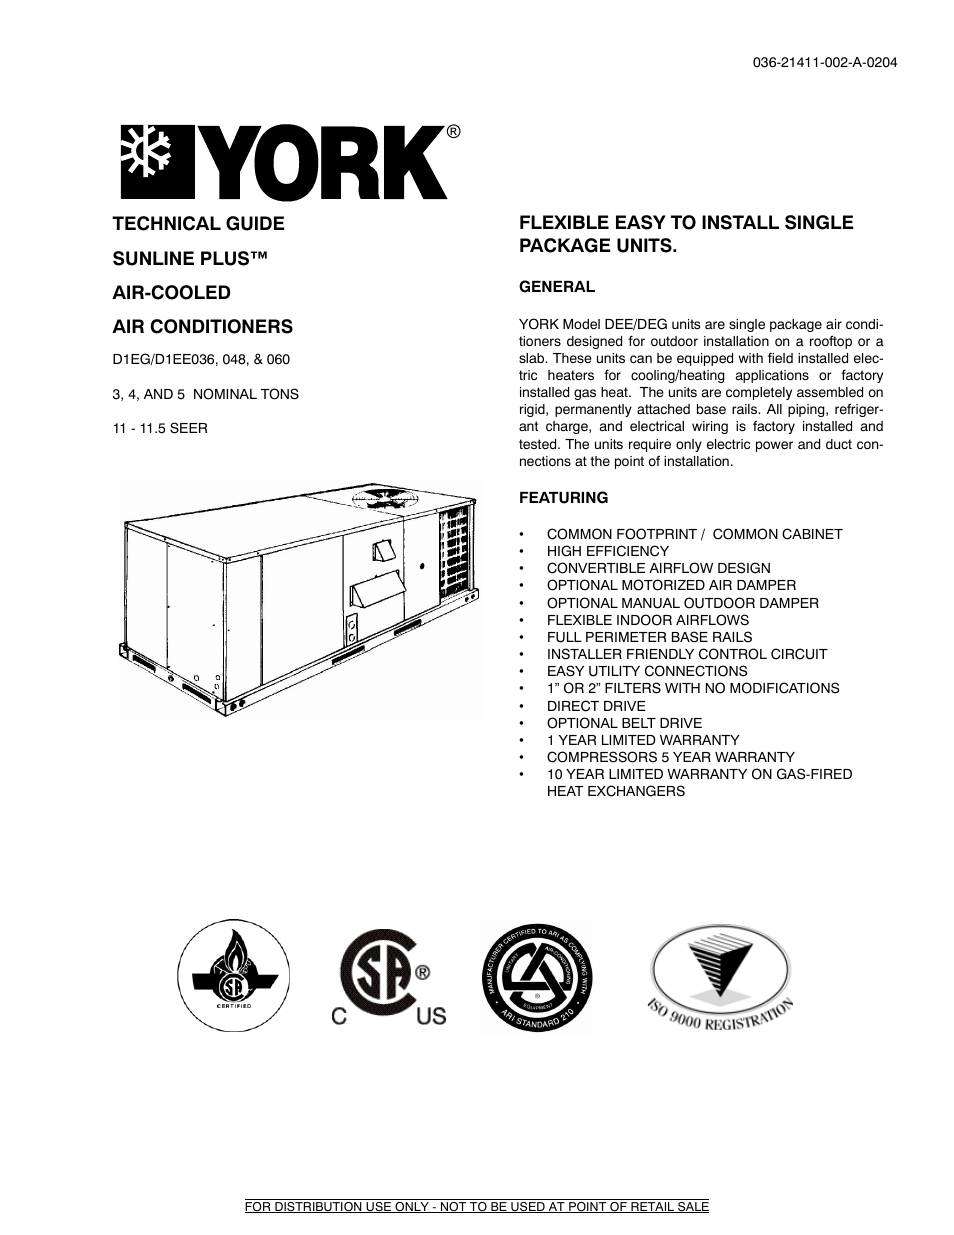 York rooftop unit wiring diagram | manual e-books.